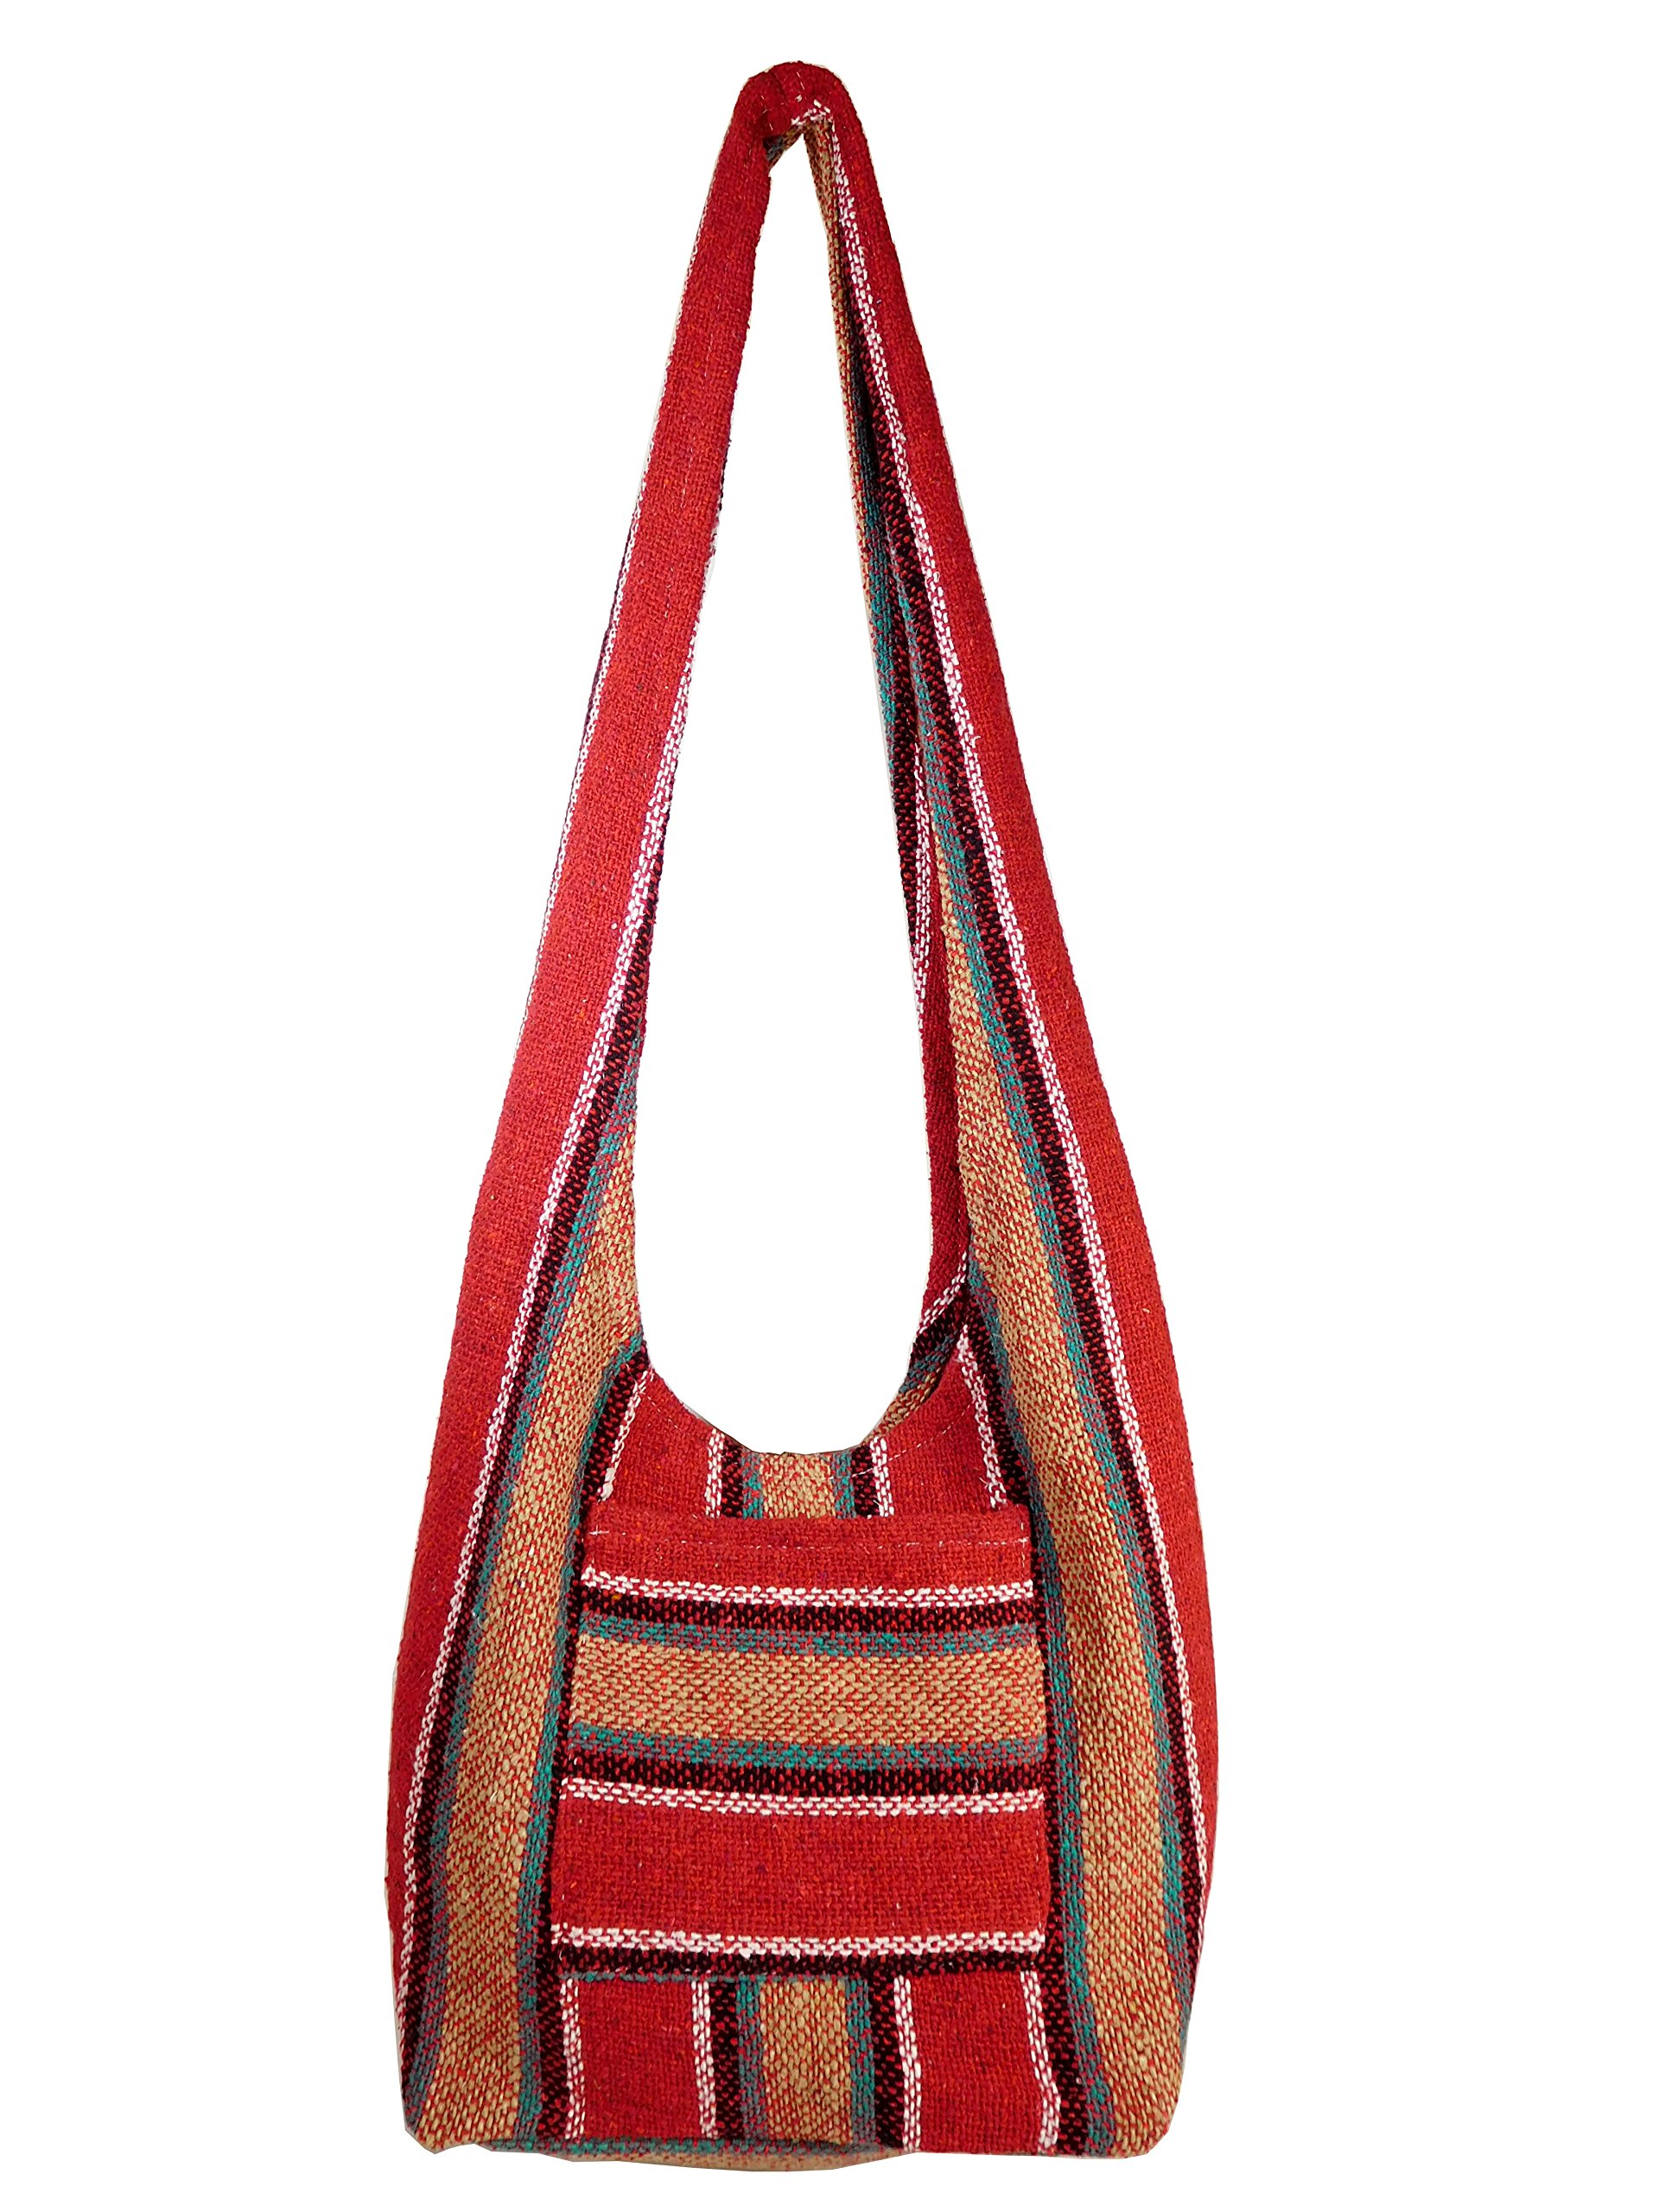 Hippie Bag Cross-Body Baja Sling Bag in Classic Baja Jacket Fabric. For Men or Women. Large and Comfortable. (Penasco Red 4) by El Paso Designs